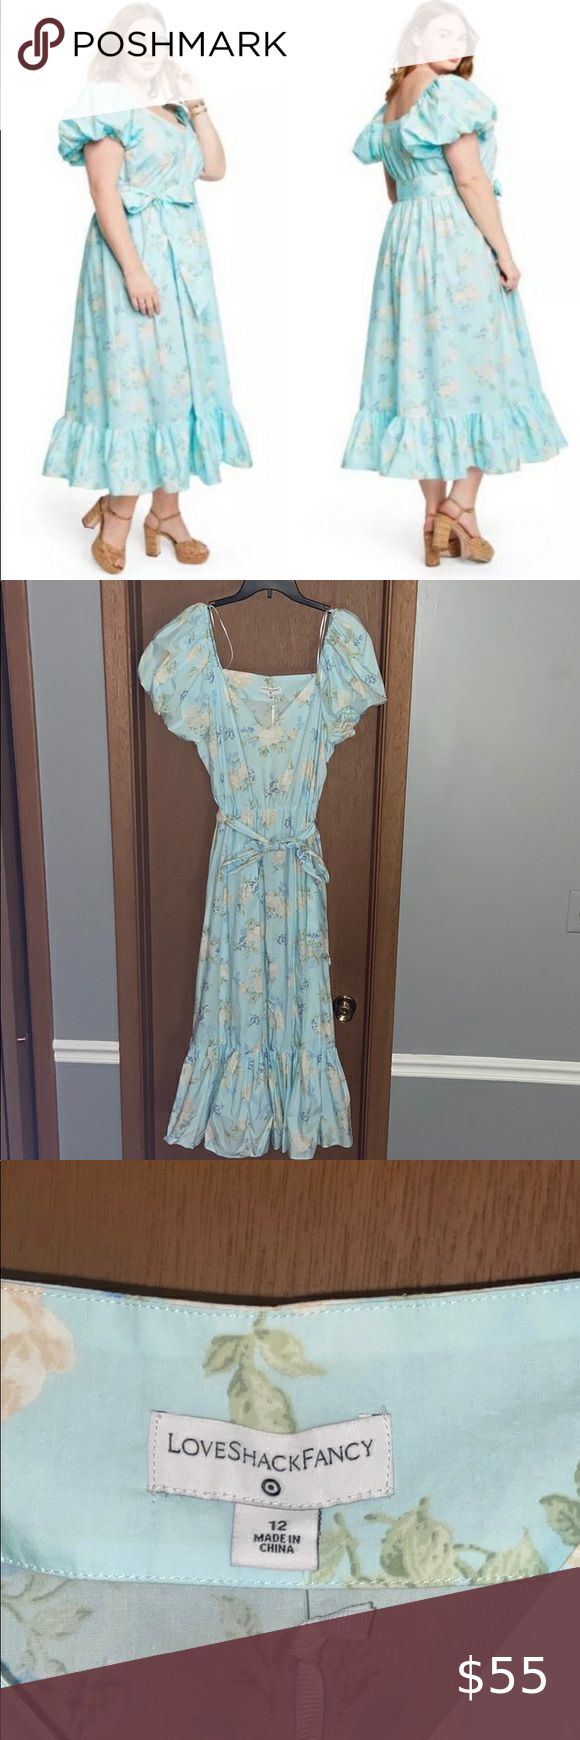 Nwt Loveshack Fancy X Target Estelle Dress Nwt Blue Floral Midi Dress With Puff Sleeves And A Belt Super Flatteri Blue Floral Midi Dress Estelle Dress Dresses [ 1740 x 580 Pixel ]